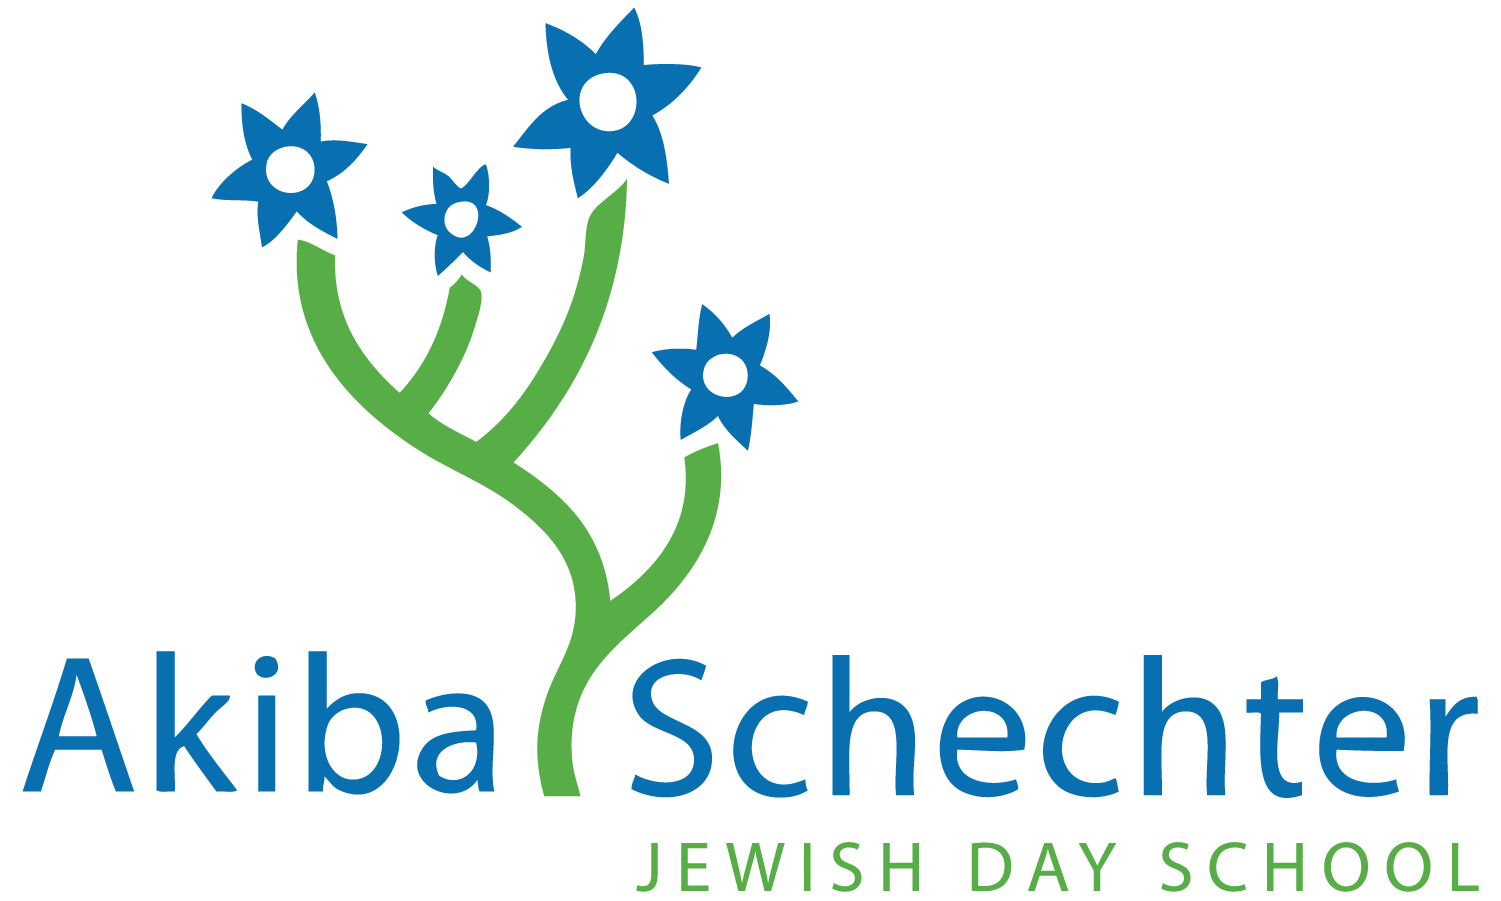 Akiba_Schechter_Store_embroidered_logo.png